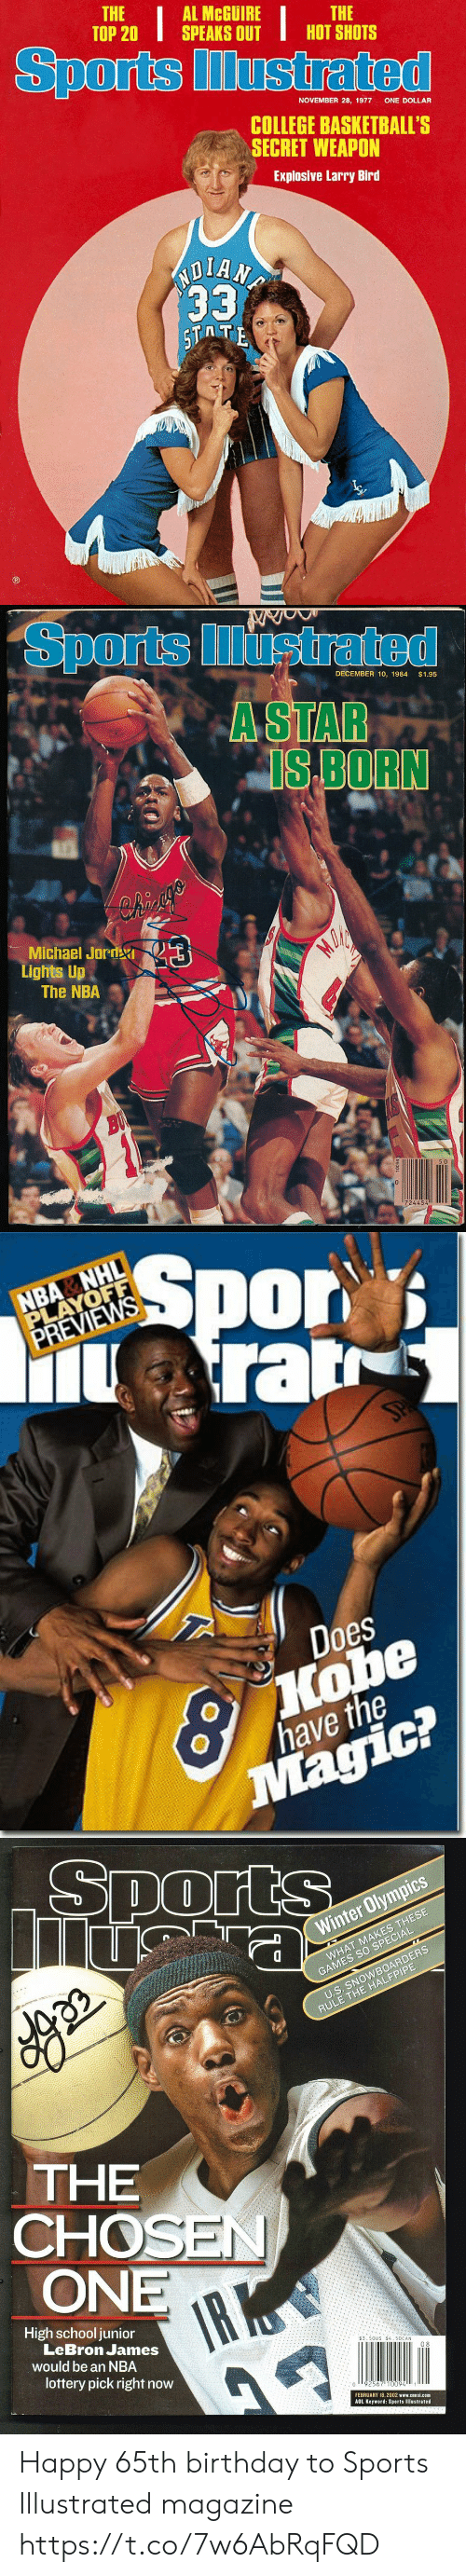 a star is born: THE  ТОР 20  AL MCGUIRE  SPEAKS OUT  THE  HOT SHOTS  Sports Illustrated  NOVEMBER 28, 1977  ONE DOLLAR  COLLEGE BASKETBALL'S  SECRET WEAPON  Explosive Larry Bird  ND  33  5TTE   Sports ustrated  DECEMBER 10, 1984  $1.95  A STAR  IS BORN  3  Michael JordRI  Lights Up  The NBA  BU  724454   NBA NHL  PLAYOFF  PREVIEWS  Spor  Arar  SPA  Does  Kobe  have the  Magic?   Sports  Winter Olympics  WHAT MAKES THESE  GAMES SO SPECIAL  U.S. SNOWBOARDERS  RULE THE HALFPIPE  THE  CHOSEN  ONE  IR K  High school junior  LeBron James  would be an NBA  $3.50US $4.50CAN  lottery pick right now  08  92567 10094  FEBRUARY 18, 2002 www.cnnsi.com  AOL Keyword: Sports lllustrated Happy 65th birthday to Sports Illustrated magazine https://t.co/7w6AbRqFQD